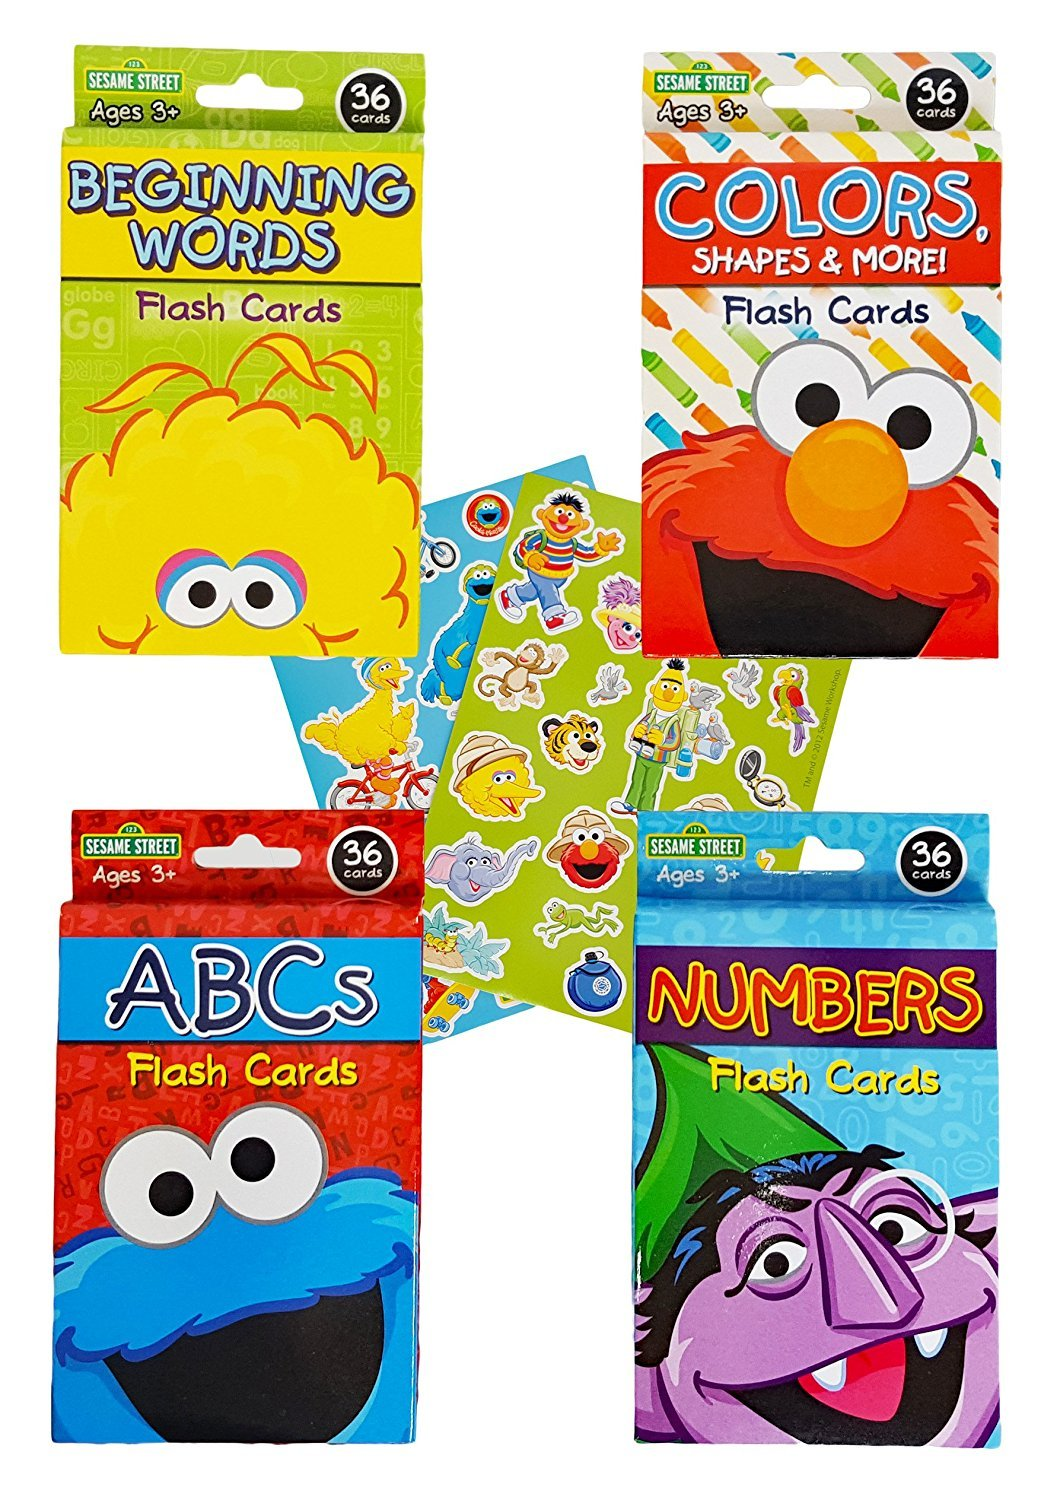 【税込?送料無料】 [セサミストリート]Sesame Cards Street Educational Flash & Cards for Early [並行輸入品] Learning. Set includes Colors, Shapes & More, ABCs, [並行輸入品] B01CYTEAI2, 素敵な:224a94b5 --- mrplusfm.net